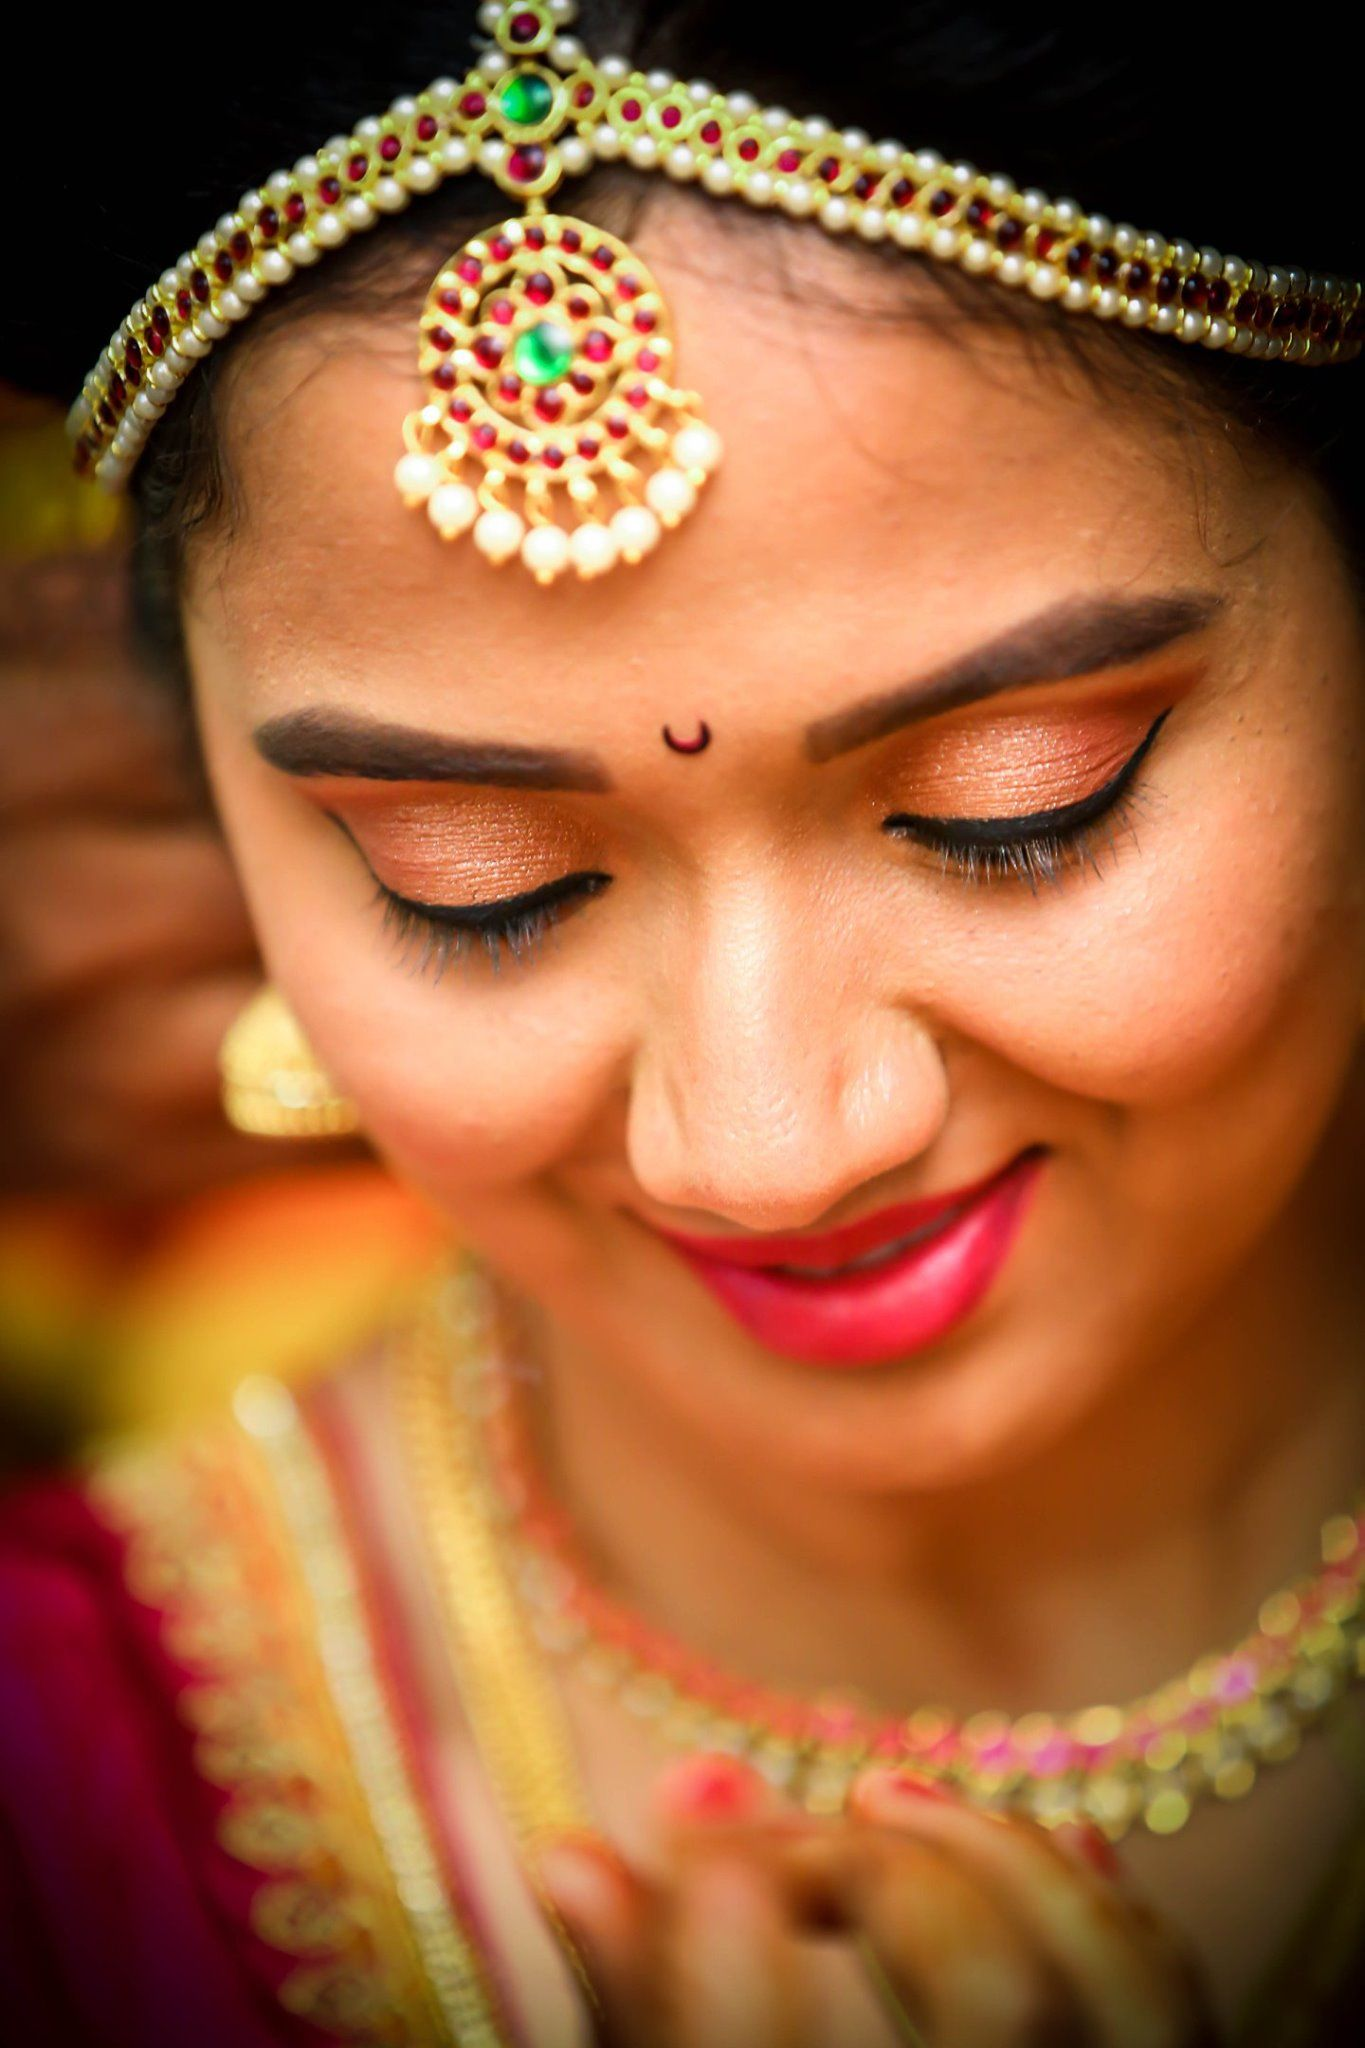 Wedlock - Wedding Photographer in Bangalore #photography #photographylovers #photographysouls #photographyeveryday #photographyislife #photographylover #photographyislifee #photographylife #photographyart #photographyoftheday #photographyy #photographylove #photographyaddict #photographyskills #photographybook #photographyprops #photographydaily #photographyisart #photographyaccount #photographystudio #photographyday #photographynature